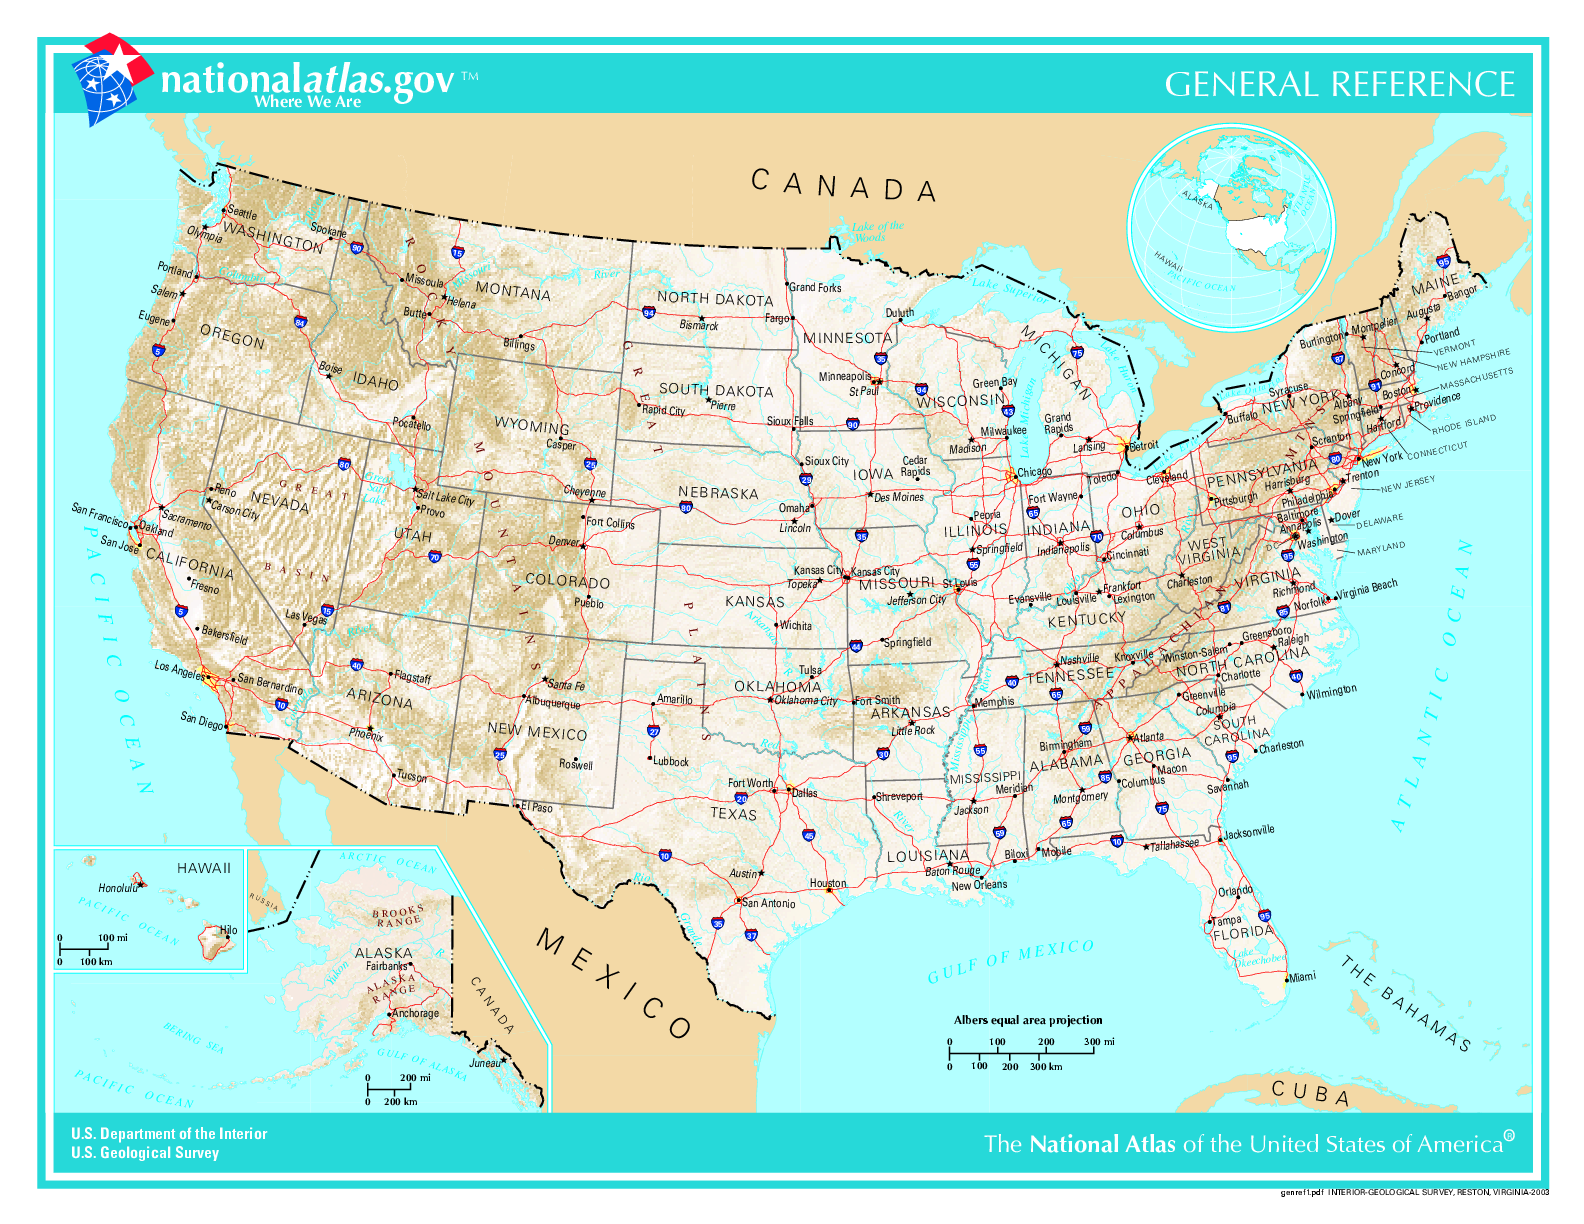 geography of the united states You will be shown 21 random us states each round of game  usa map match  this is a great way to make learning the geography of the united states of america fun.